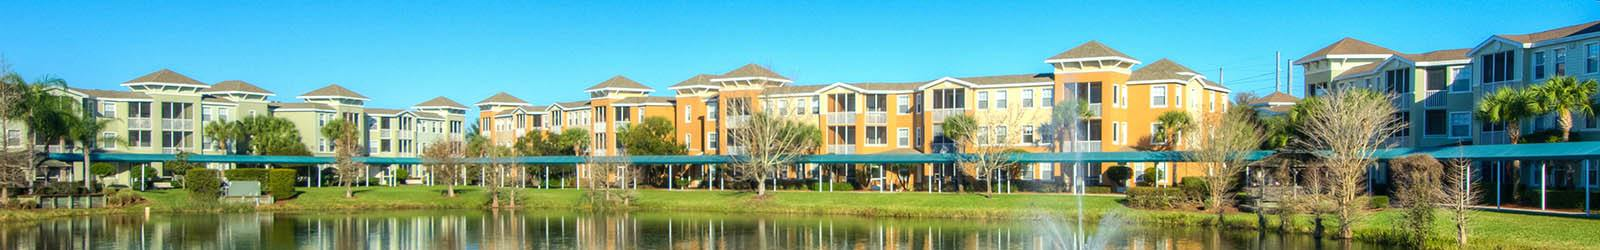 Senior living lifestyle programs in Florida make life easy and enjoyable